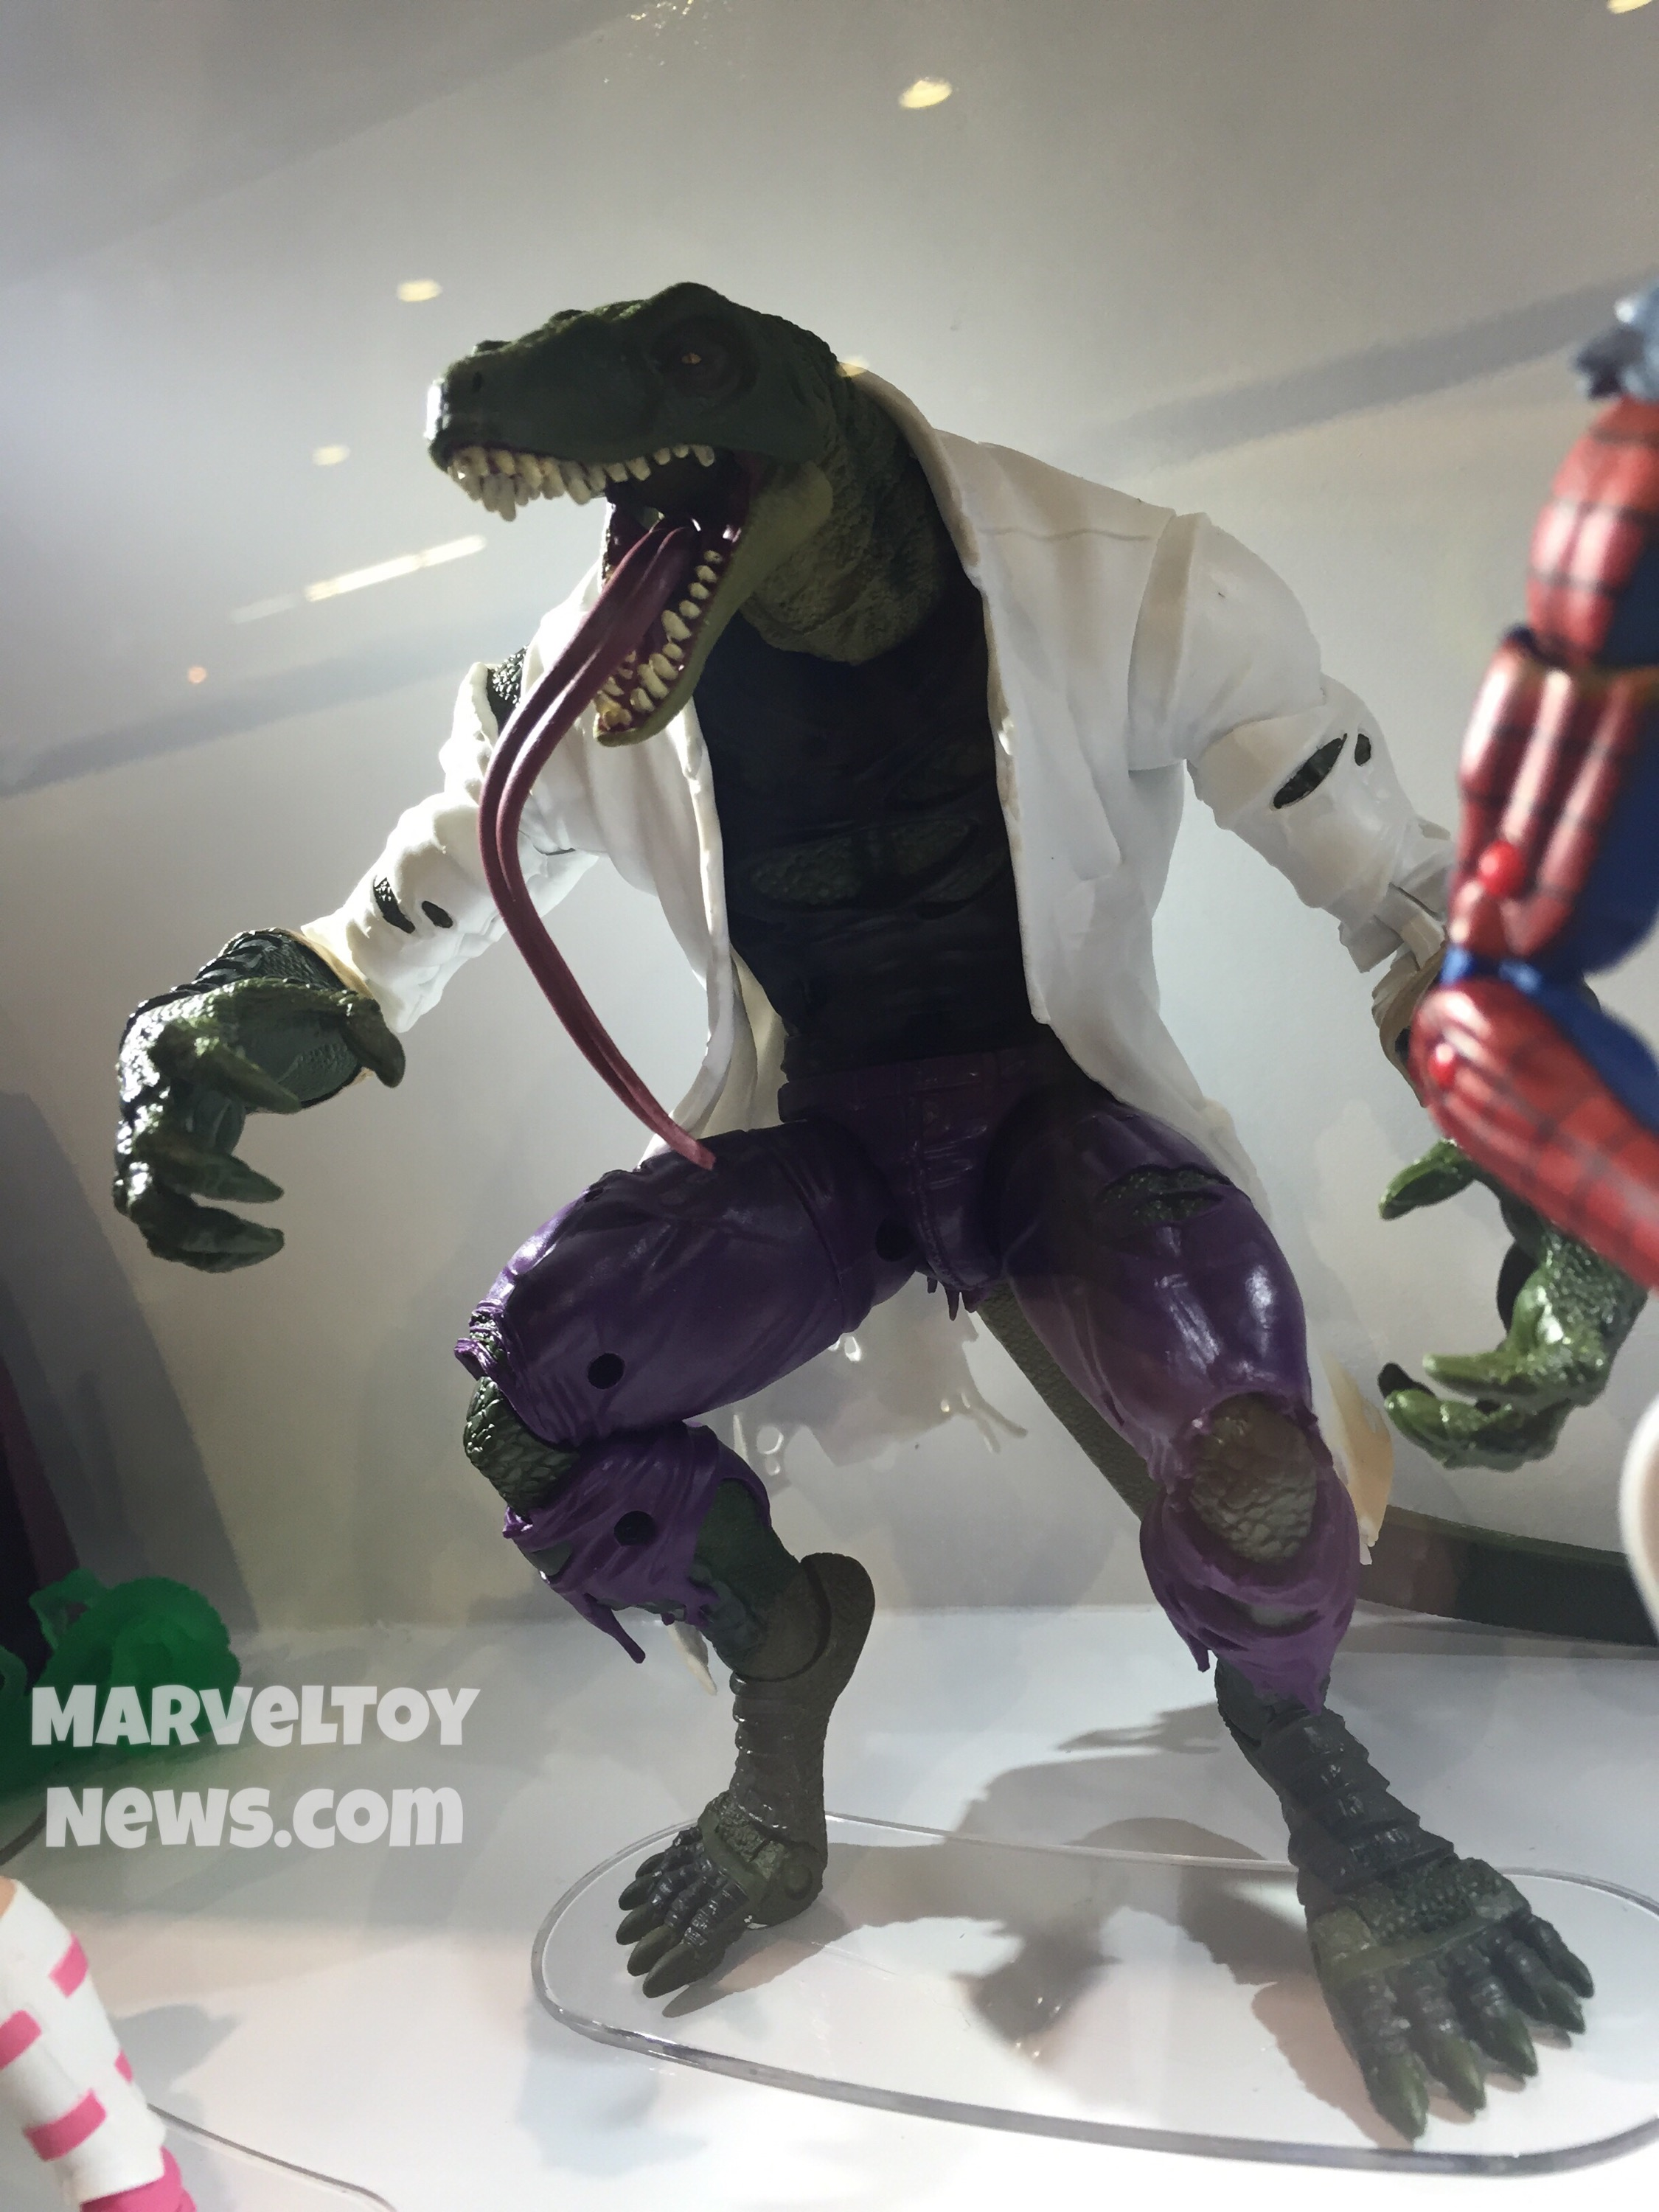 69f9d8b6f8050 HasCon: Marvel Legends Spider-Man Lizard Series Photos! - Marvel Toy ...